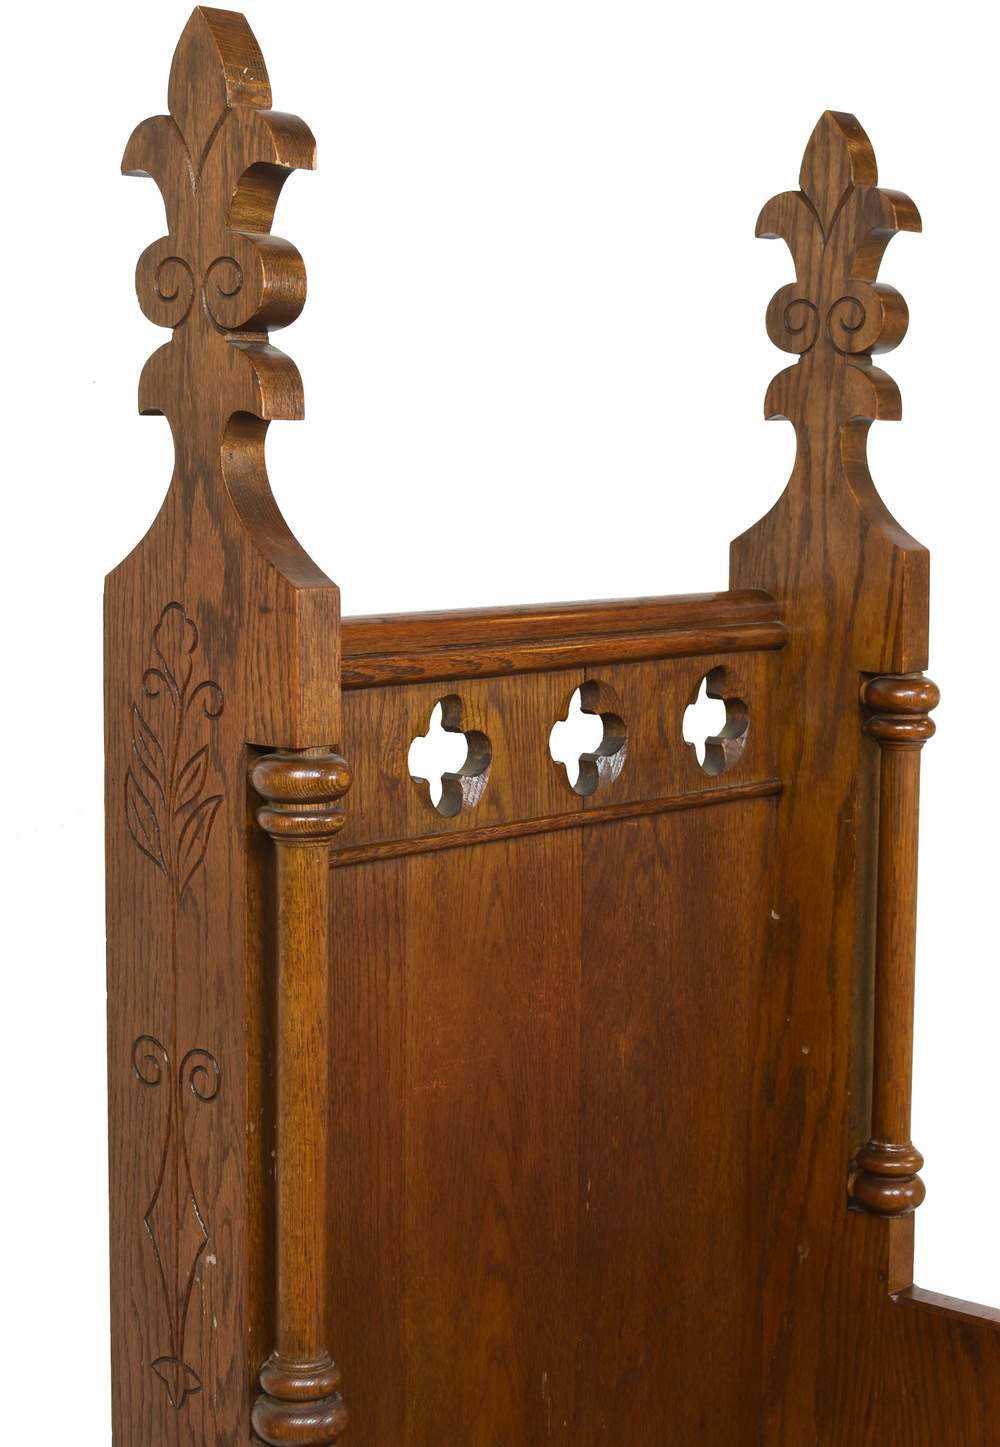 46363-small-clergy-chair-with-carved-lilies-on-side-angled-front-detail.jpg